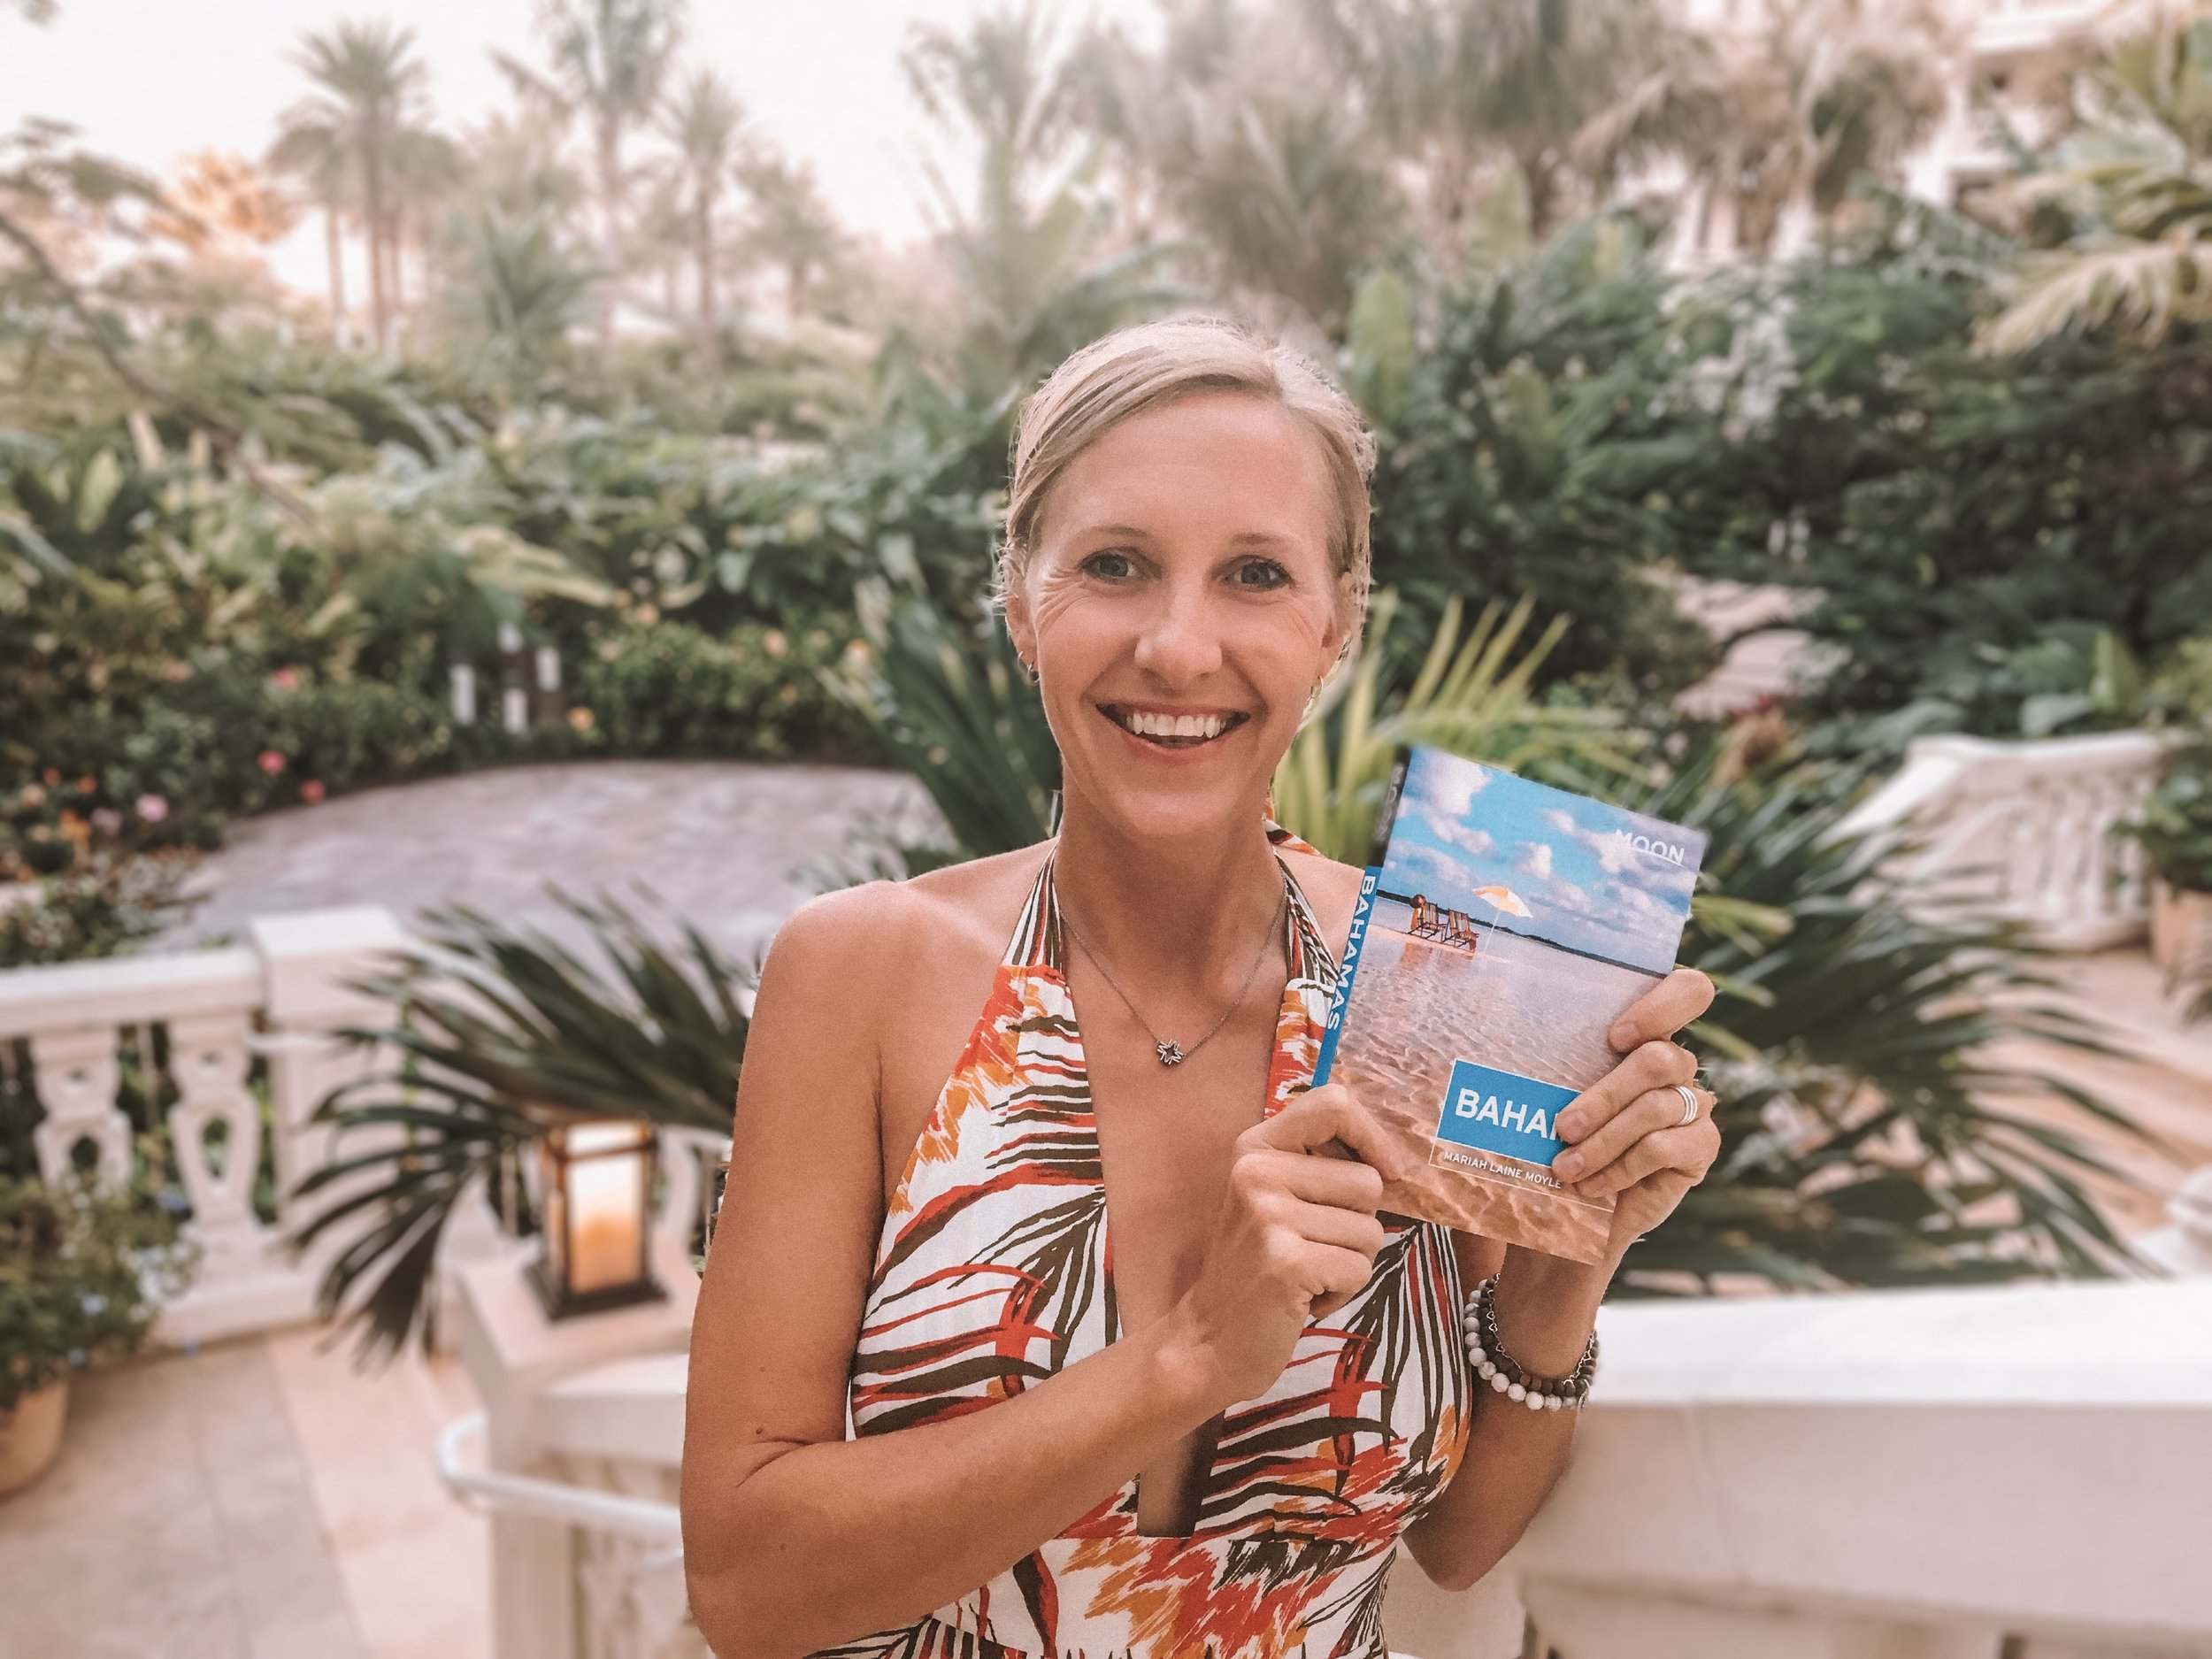 Writing - Author of Moon Bahamas travel guidebook, as well as countless articles and blog posts. Mariah's writing showcases her love for the Bahamas, and for self-care, personal development, health & well-being.